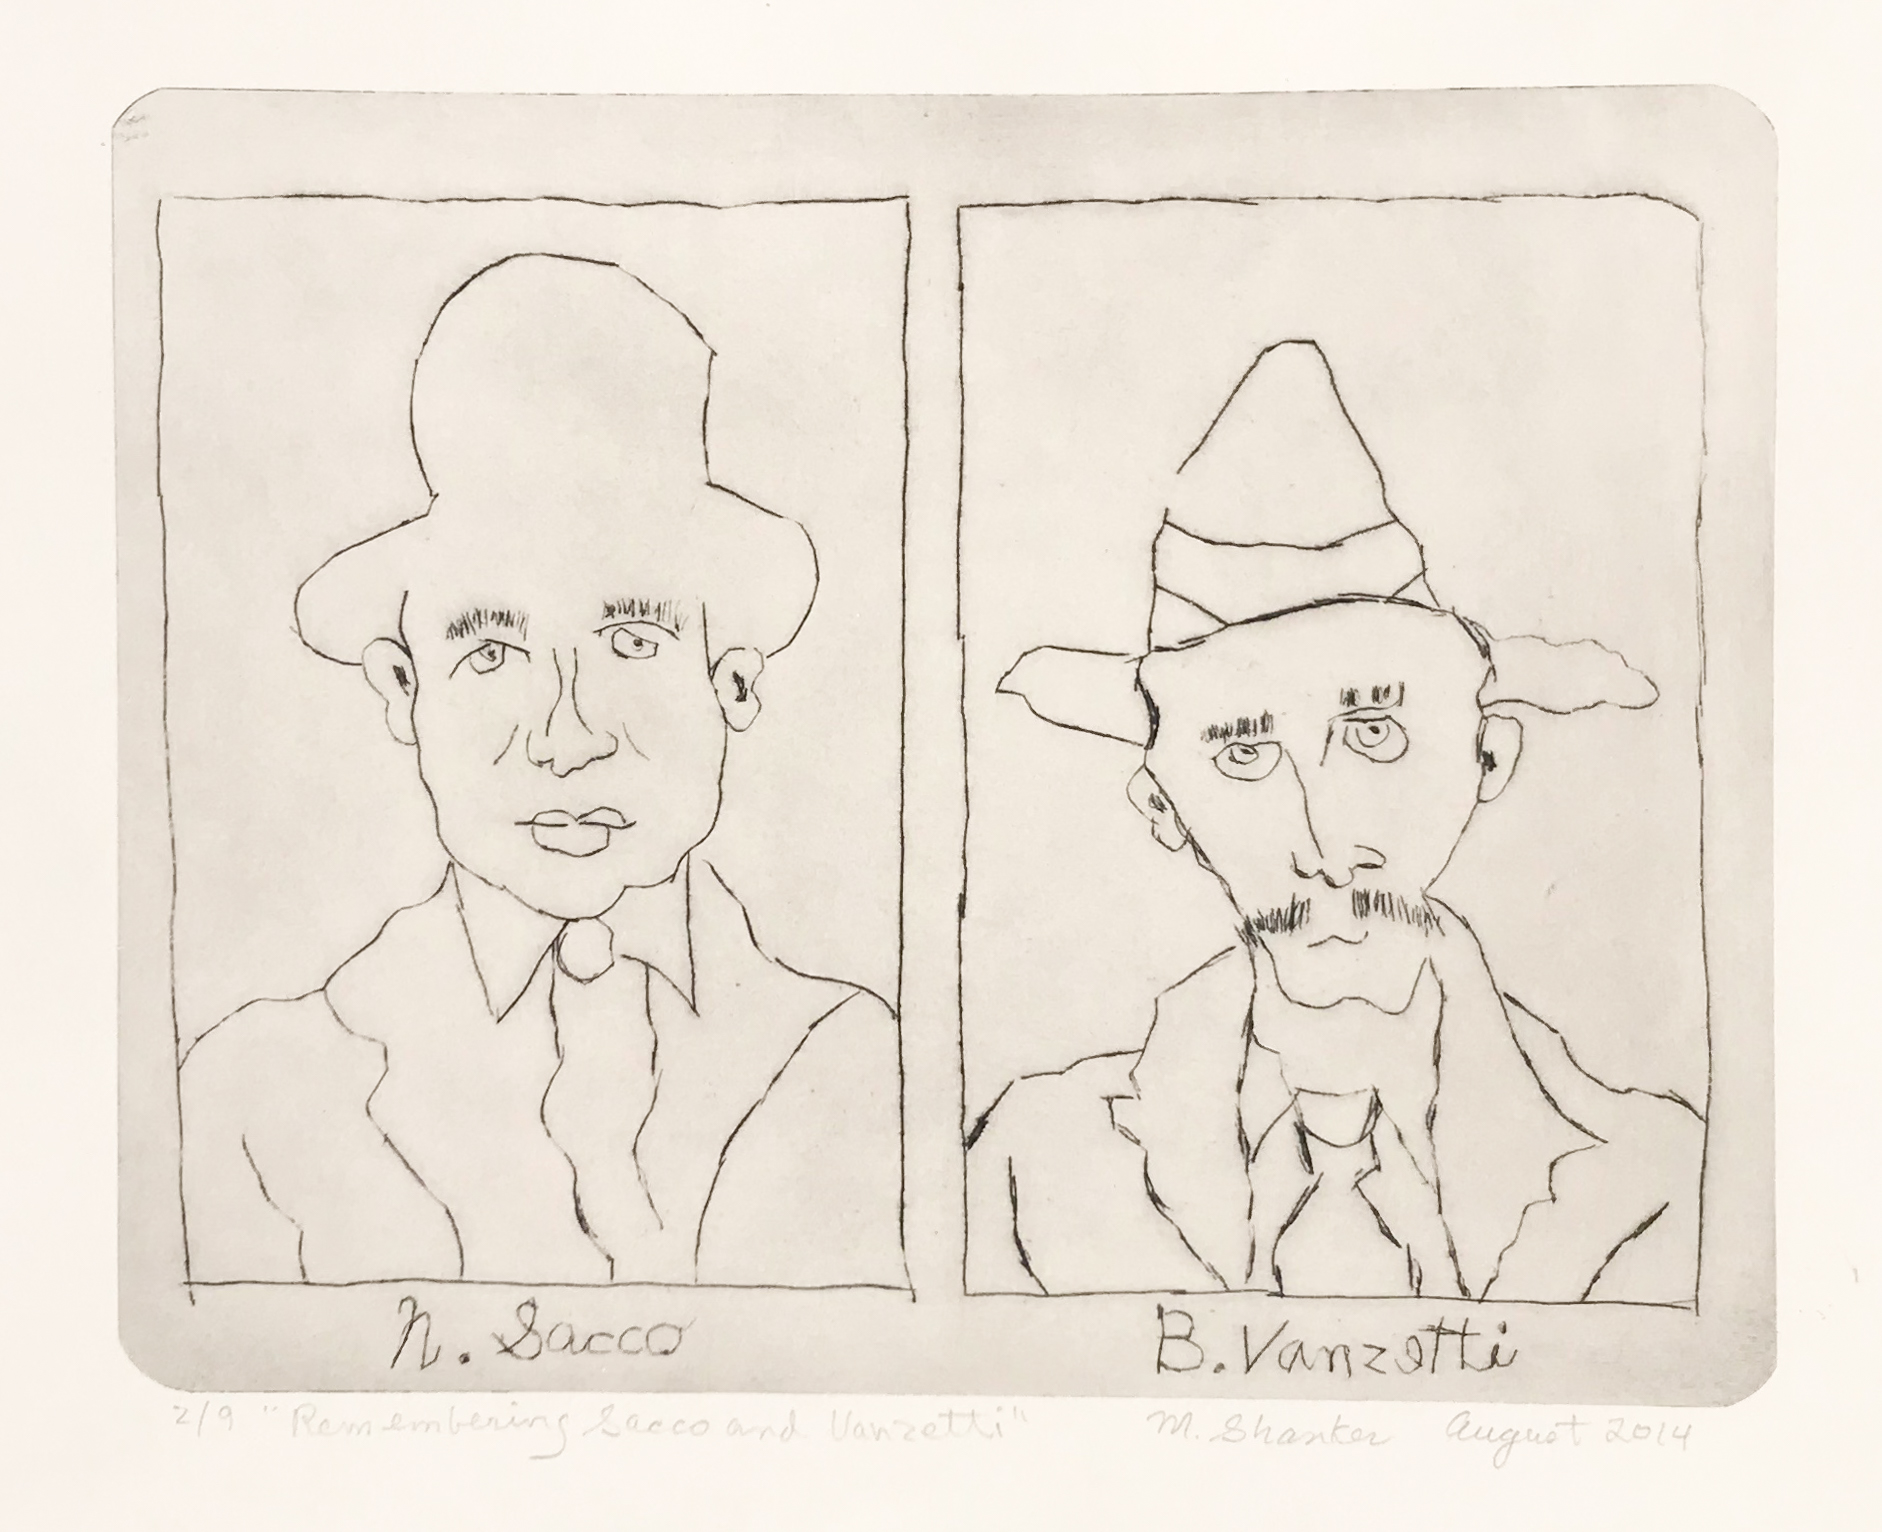 """N. Sacco and B.Vanzetti, 2014. Drypoint, 11"""" x 15"""" Edition of 9."""